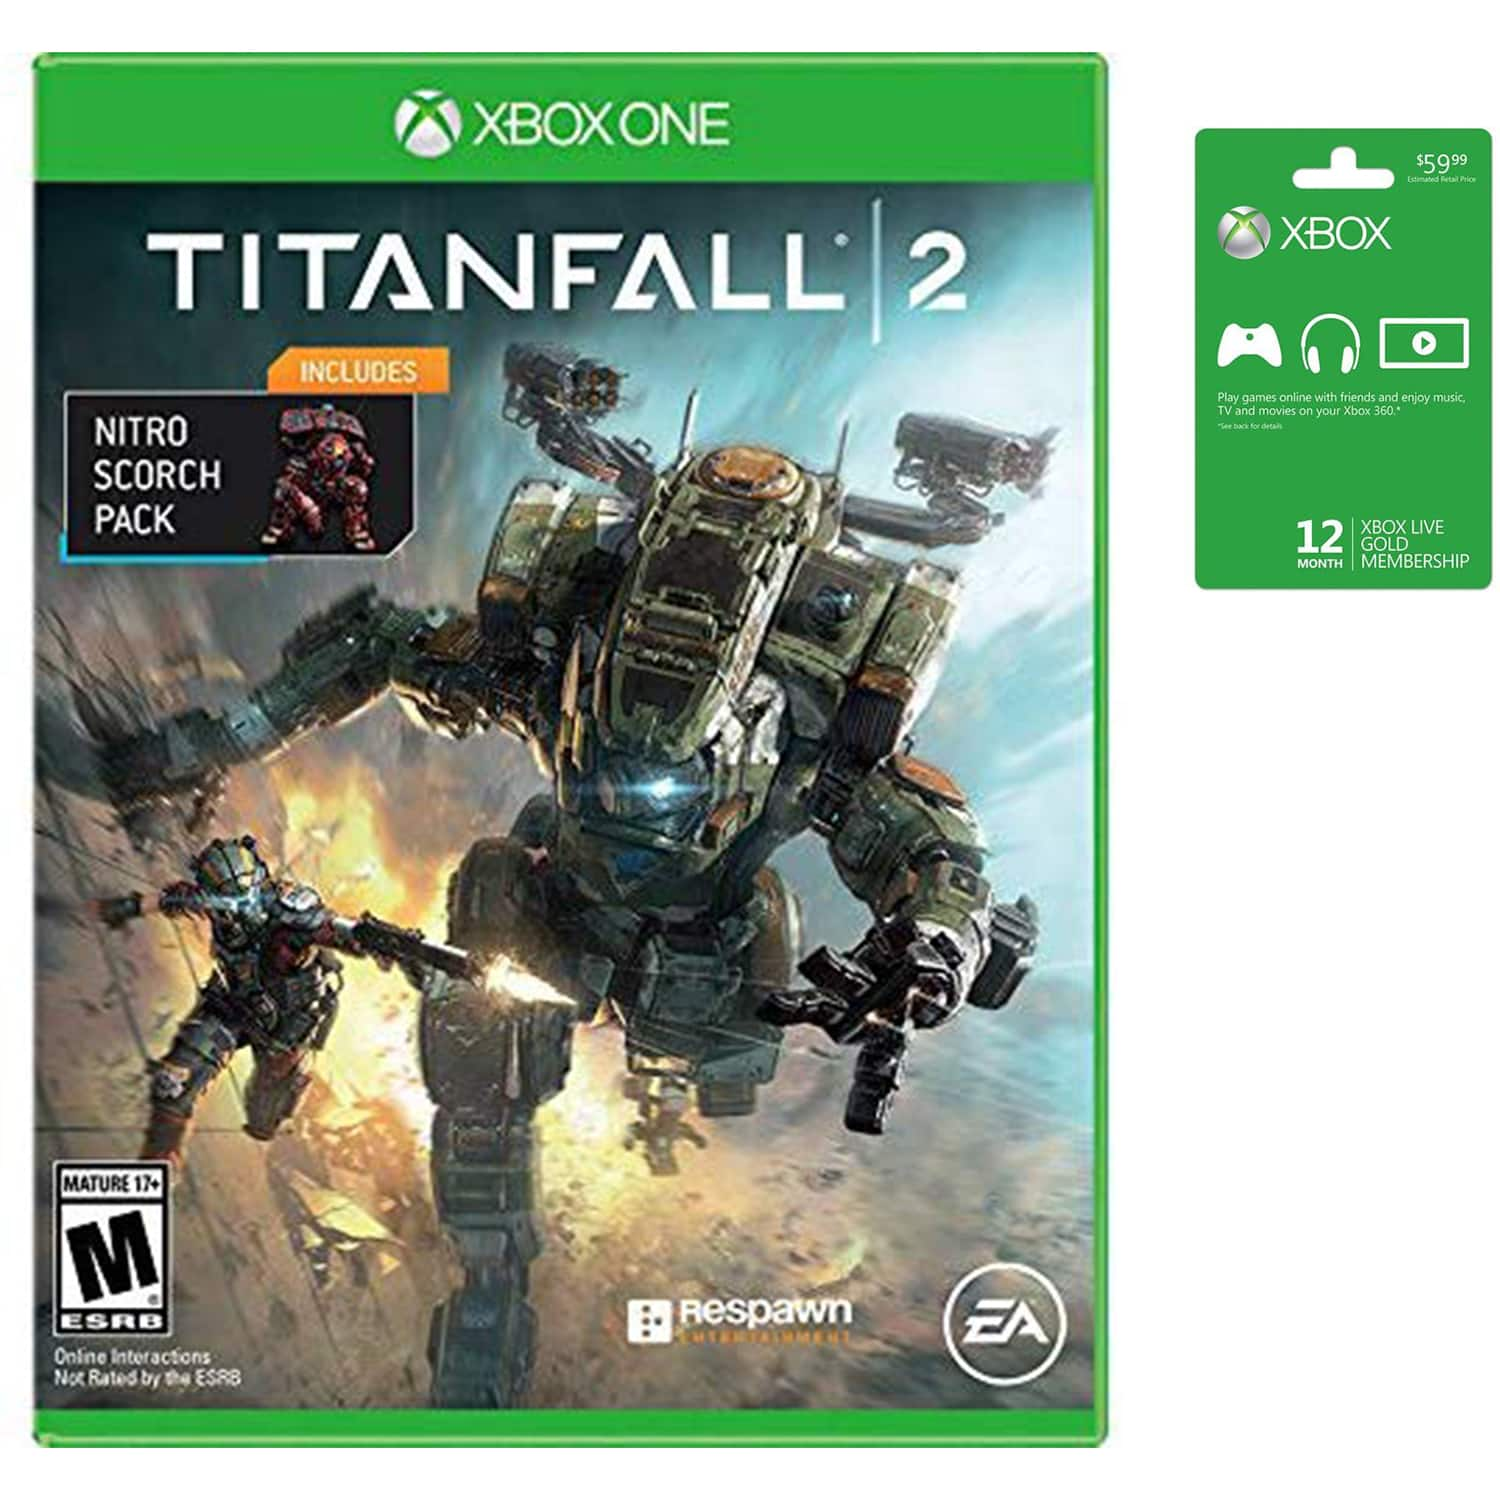 Microsoft Xbox LIVE 12 Month Gold Membership (Physical Card) + Titanfall 2 With Nitro Pack (Physical Game) - $45.99 + Free Shipping